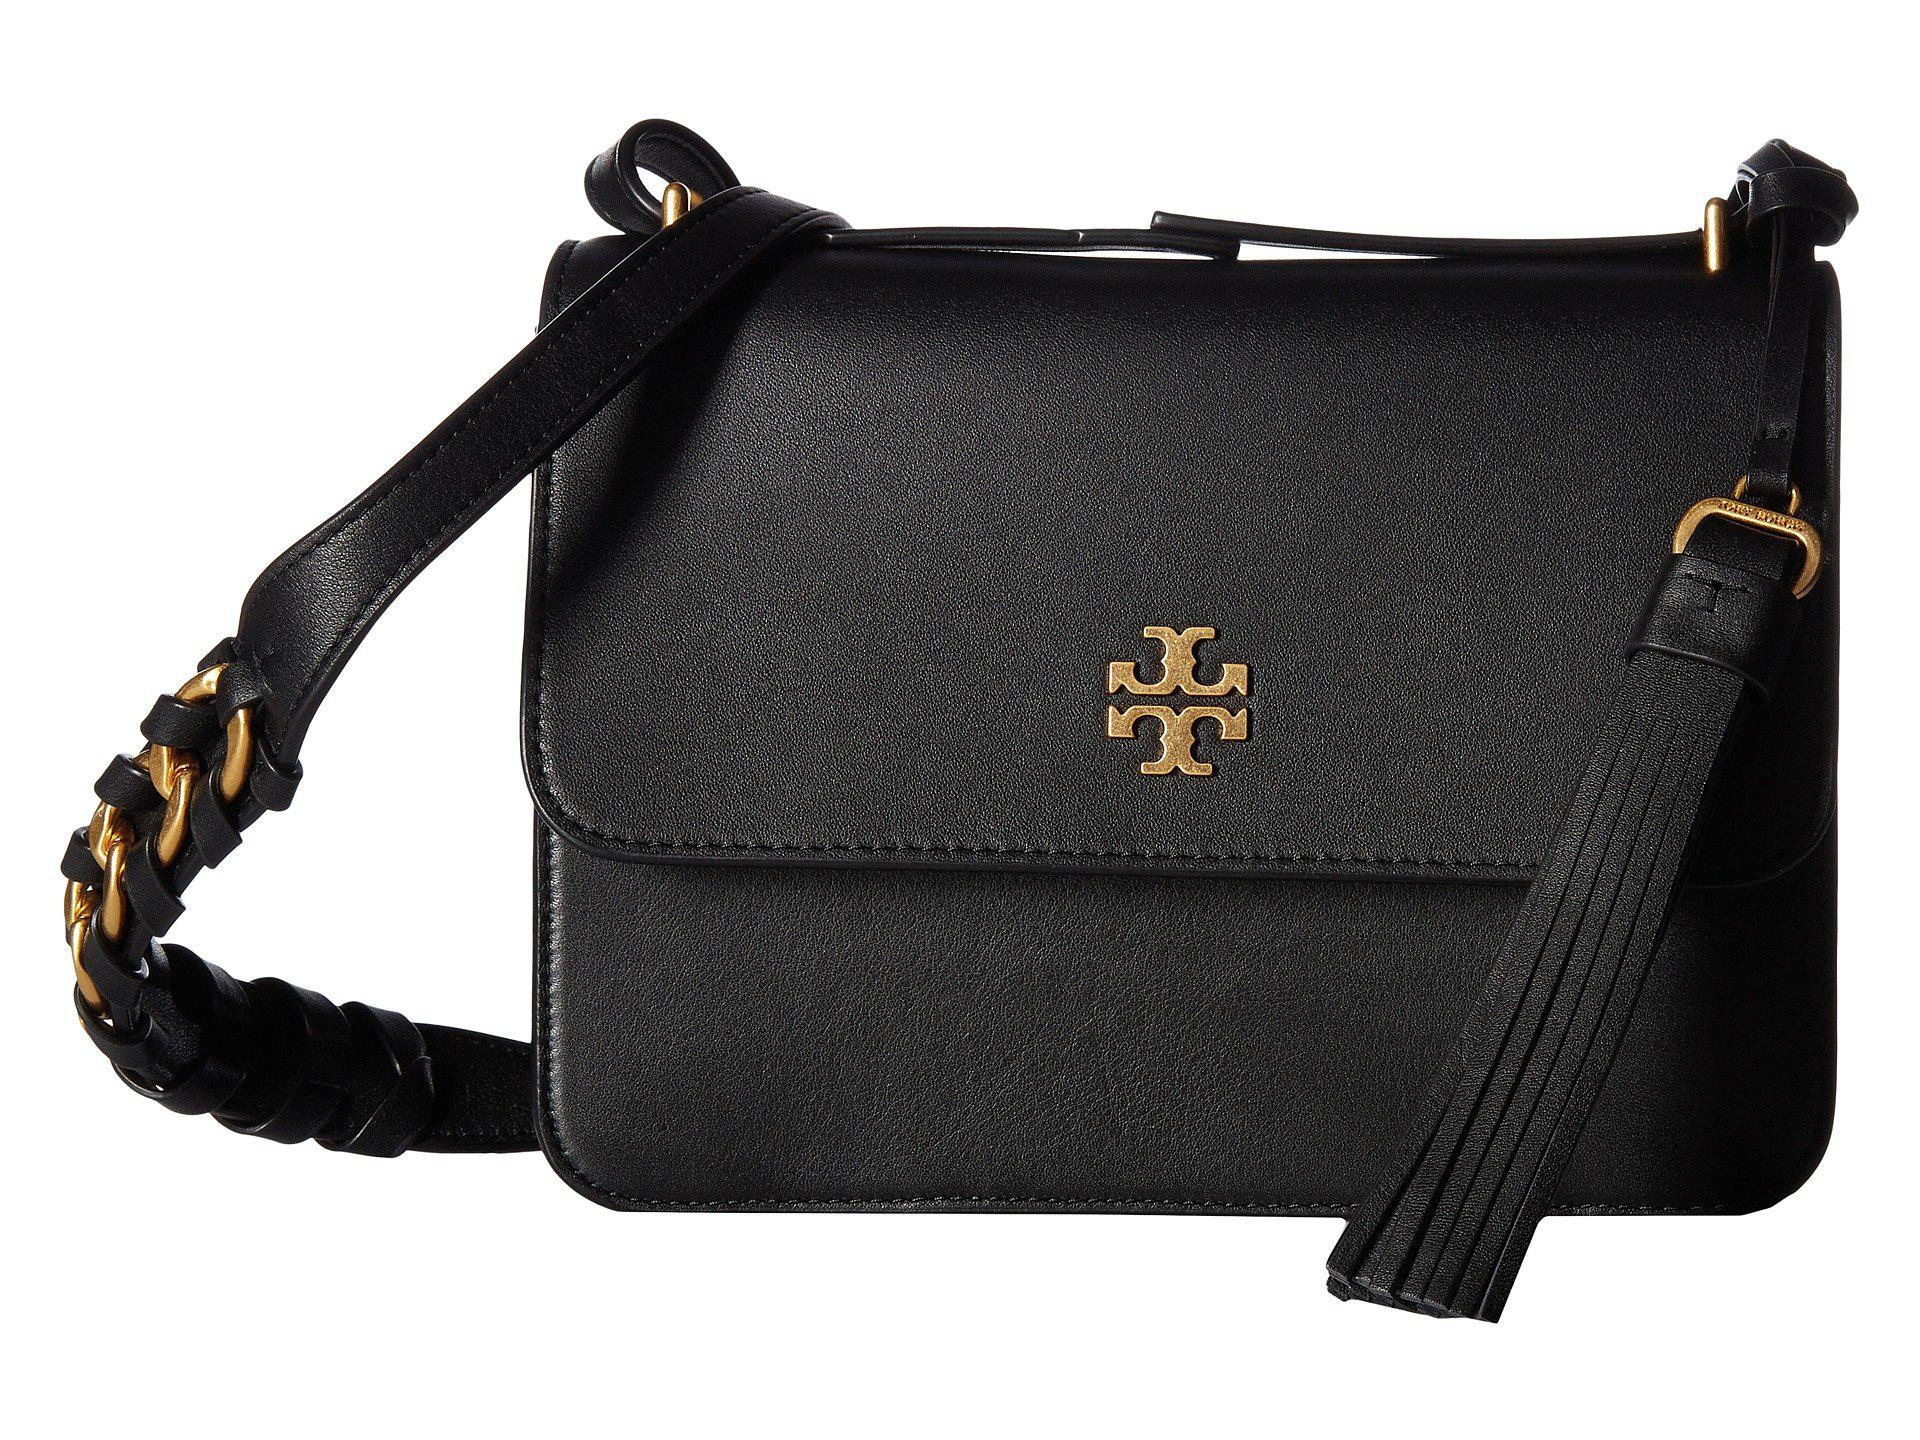 40c77e20c22b Lyst - Tory Burch Brooke Shoulder Bag in Black